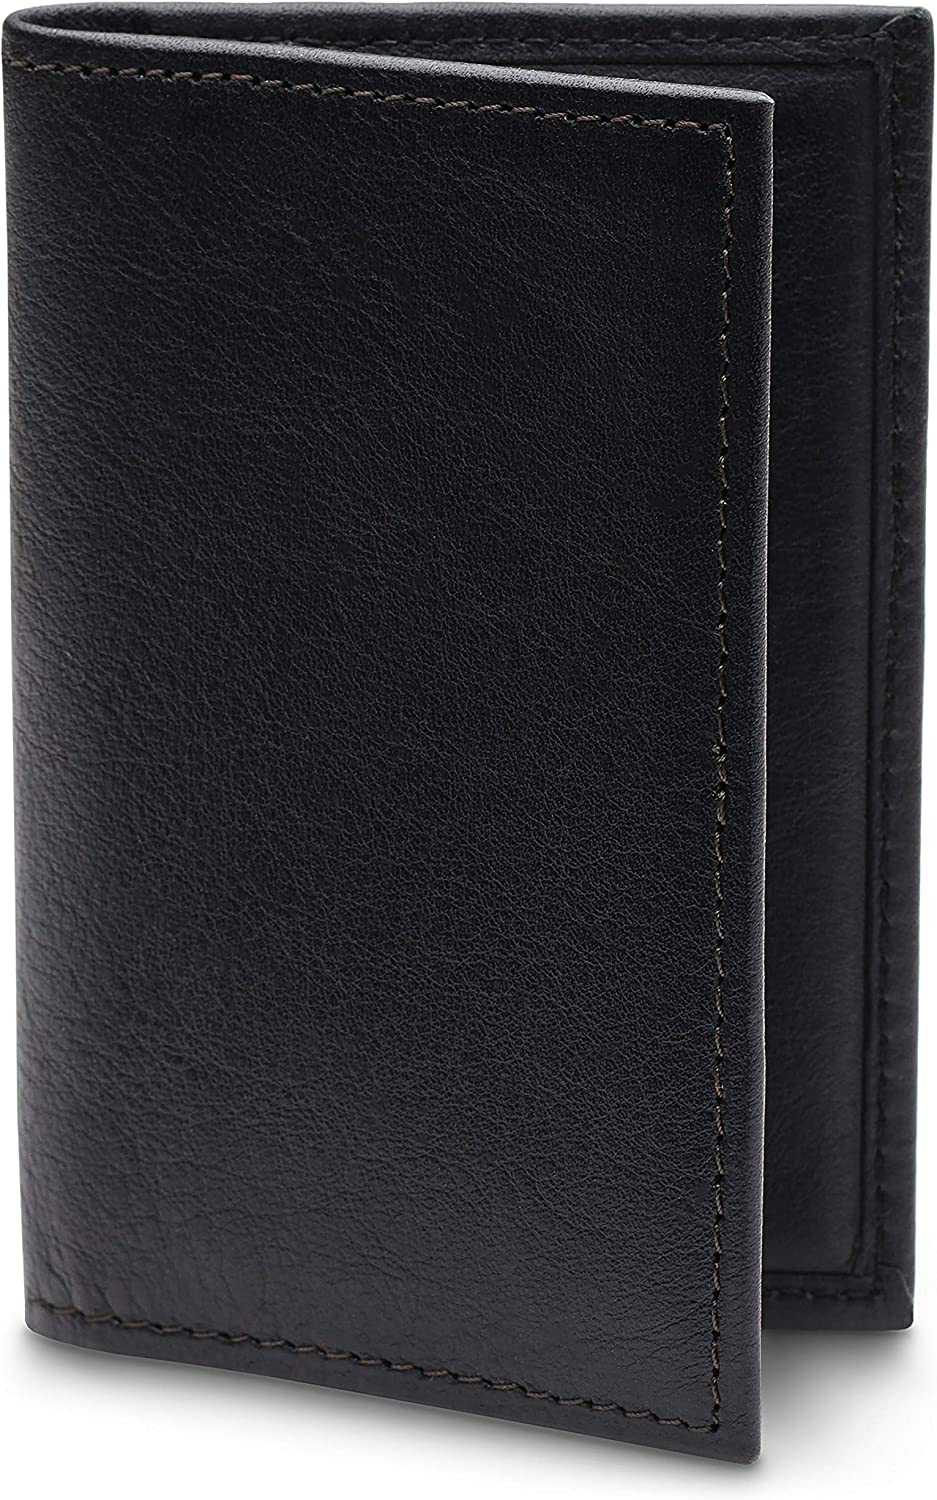 Max 79% OFF Bosca Men's Calling Card Case Now free shipping